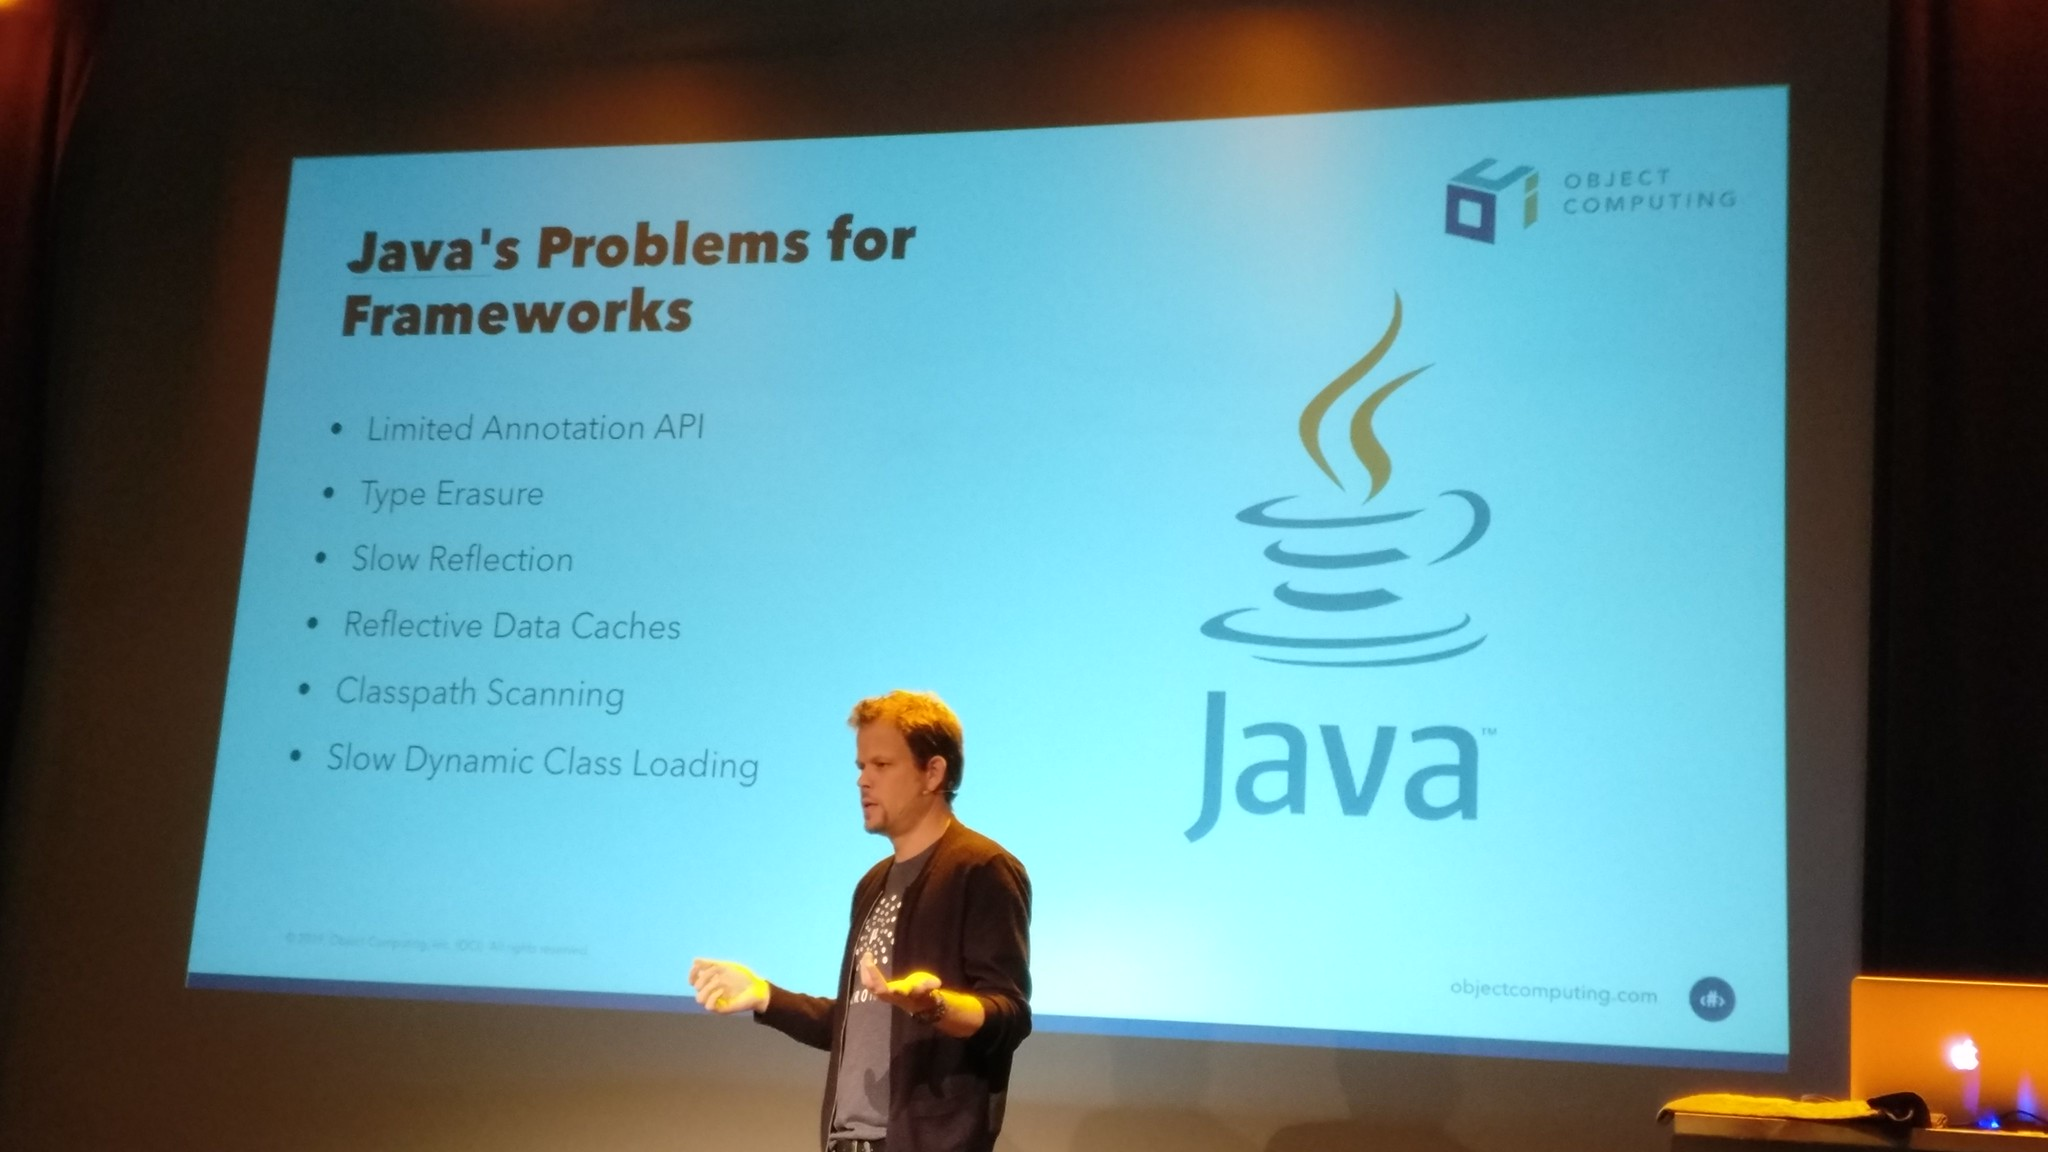 Graeme Rocher explaining Java's problems for Frameworks